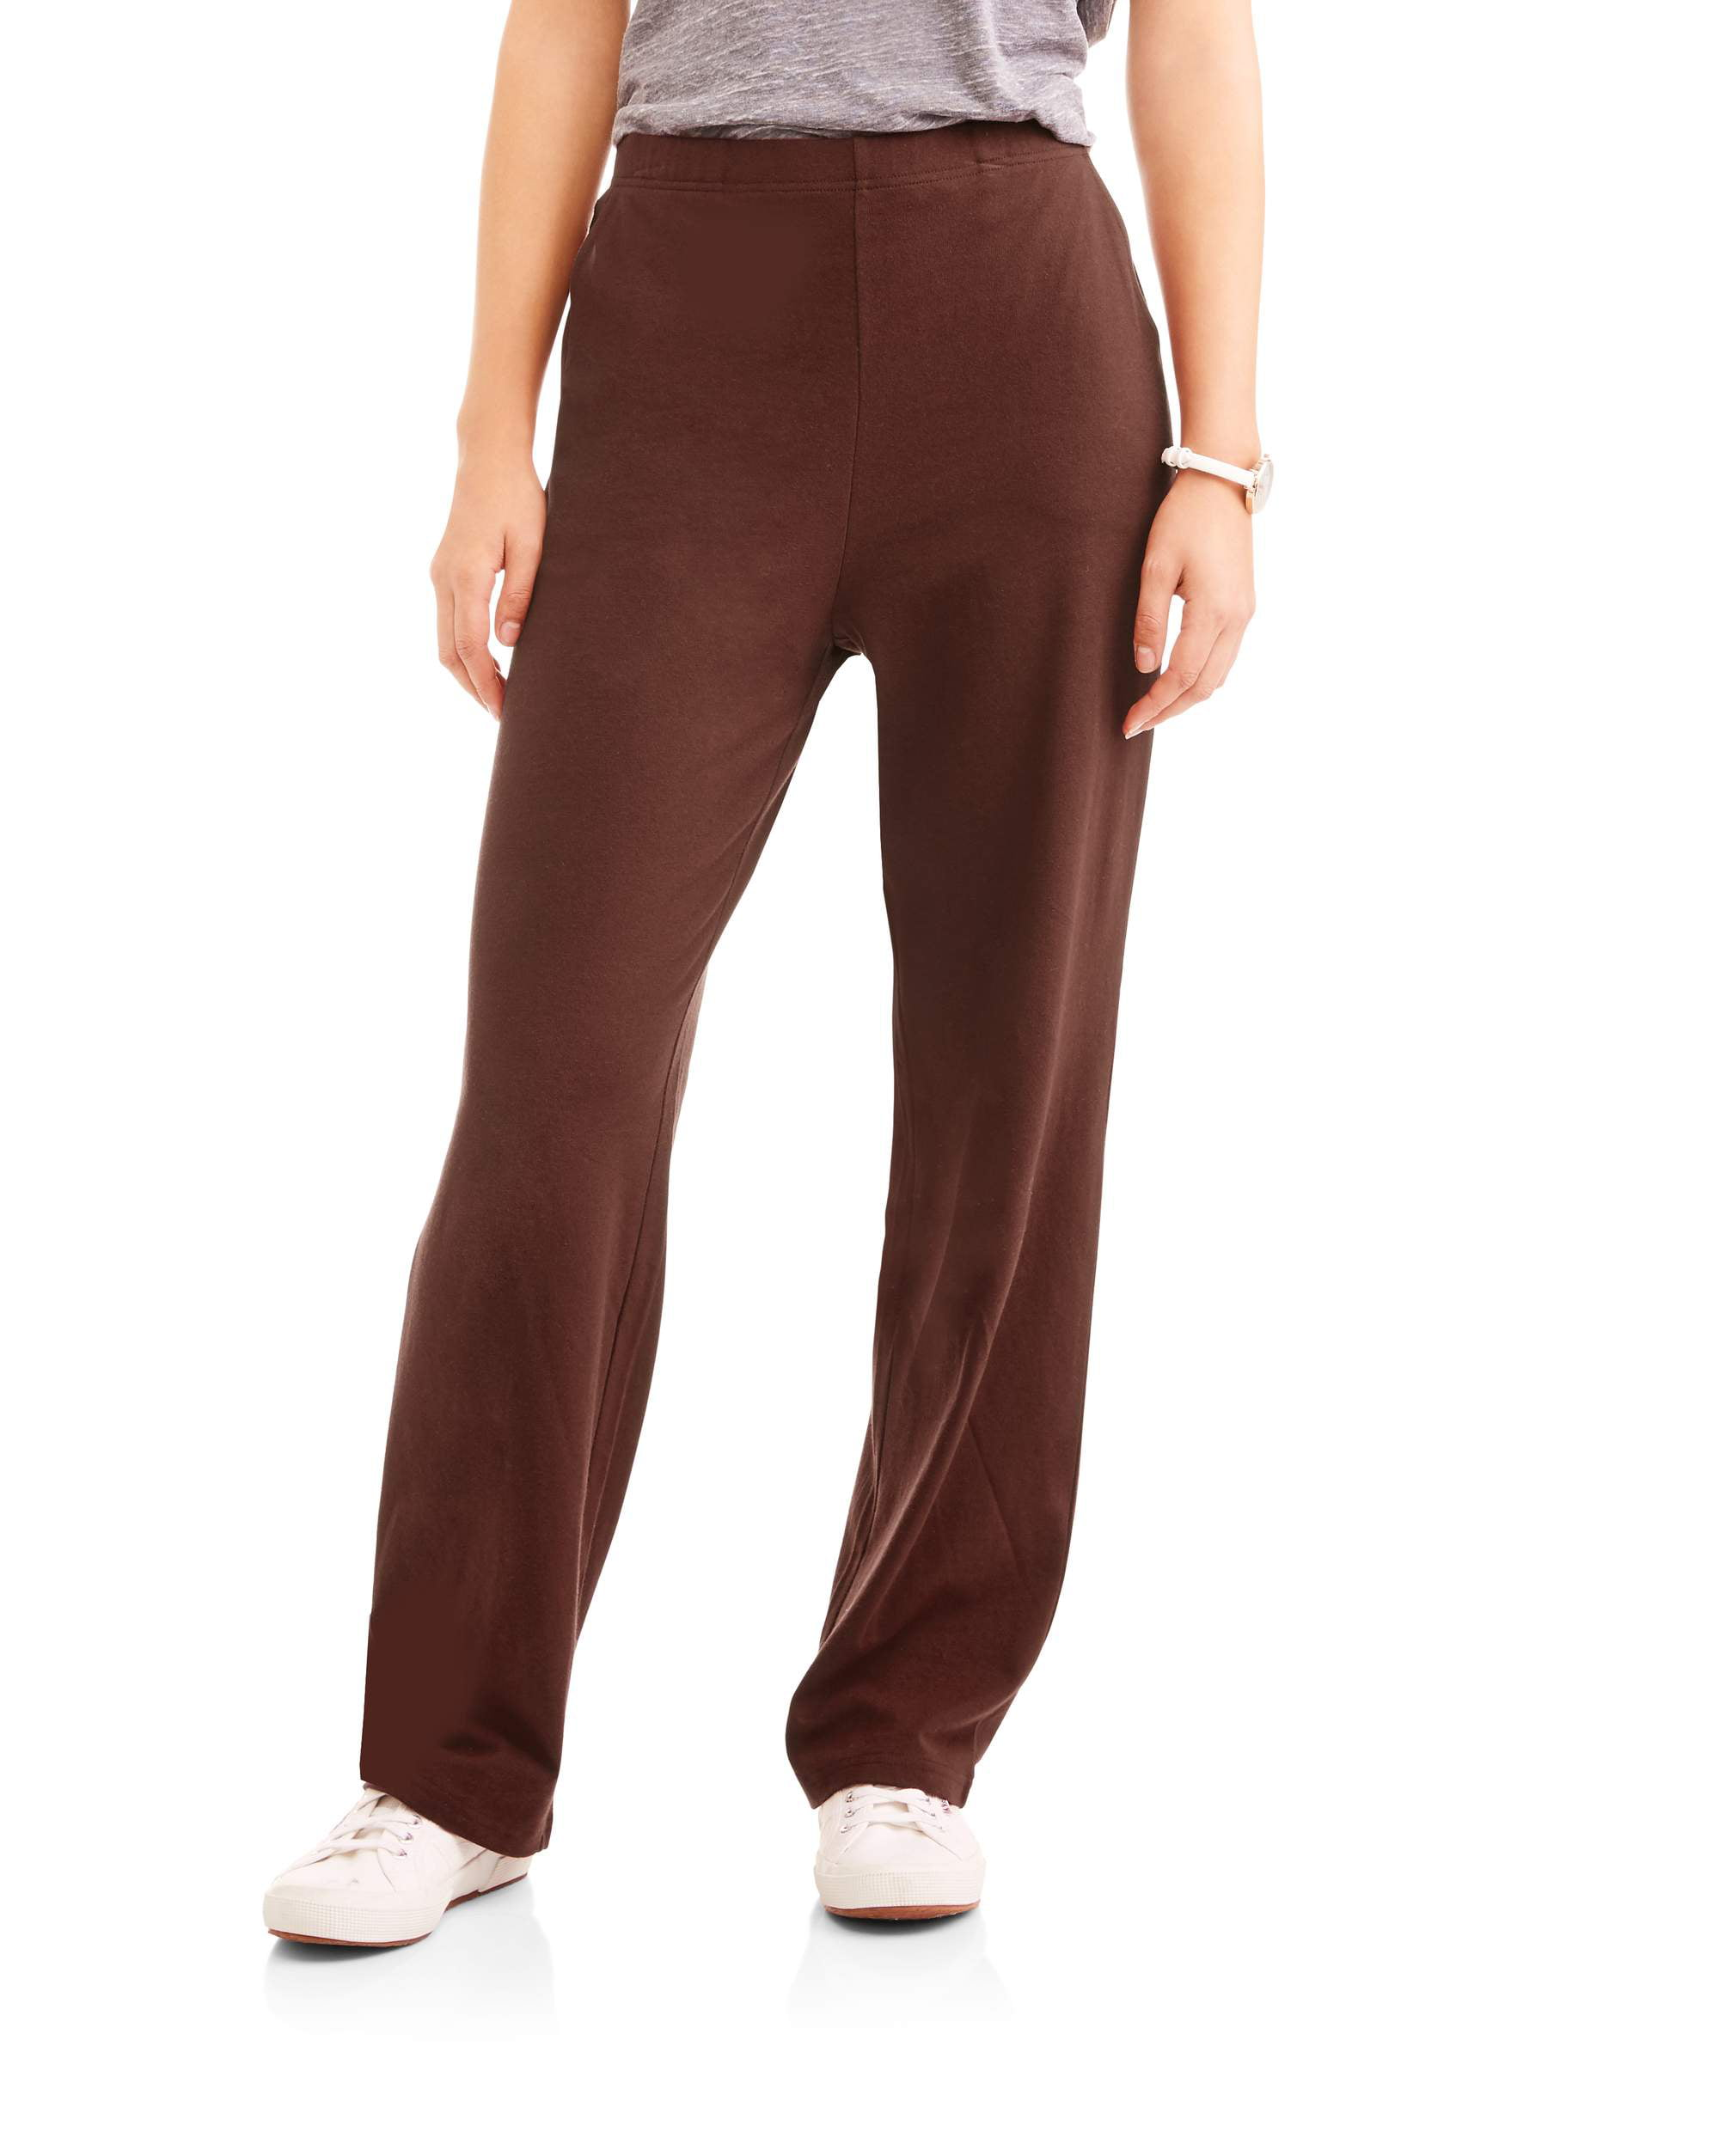 47d861a48d7 White Stag - Women s Knit Pull-On Pant available in Regular and Petite -  Walmart.com